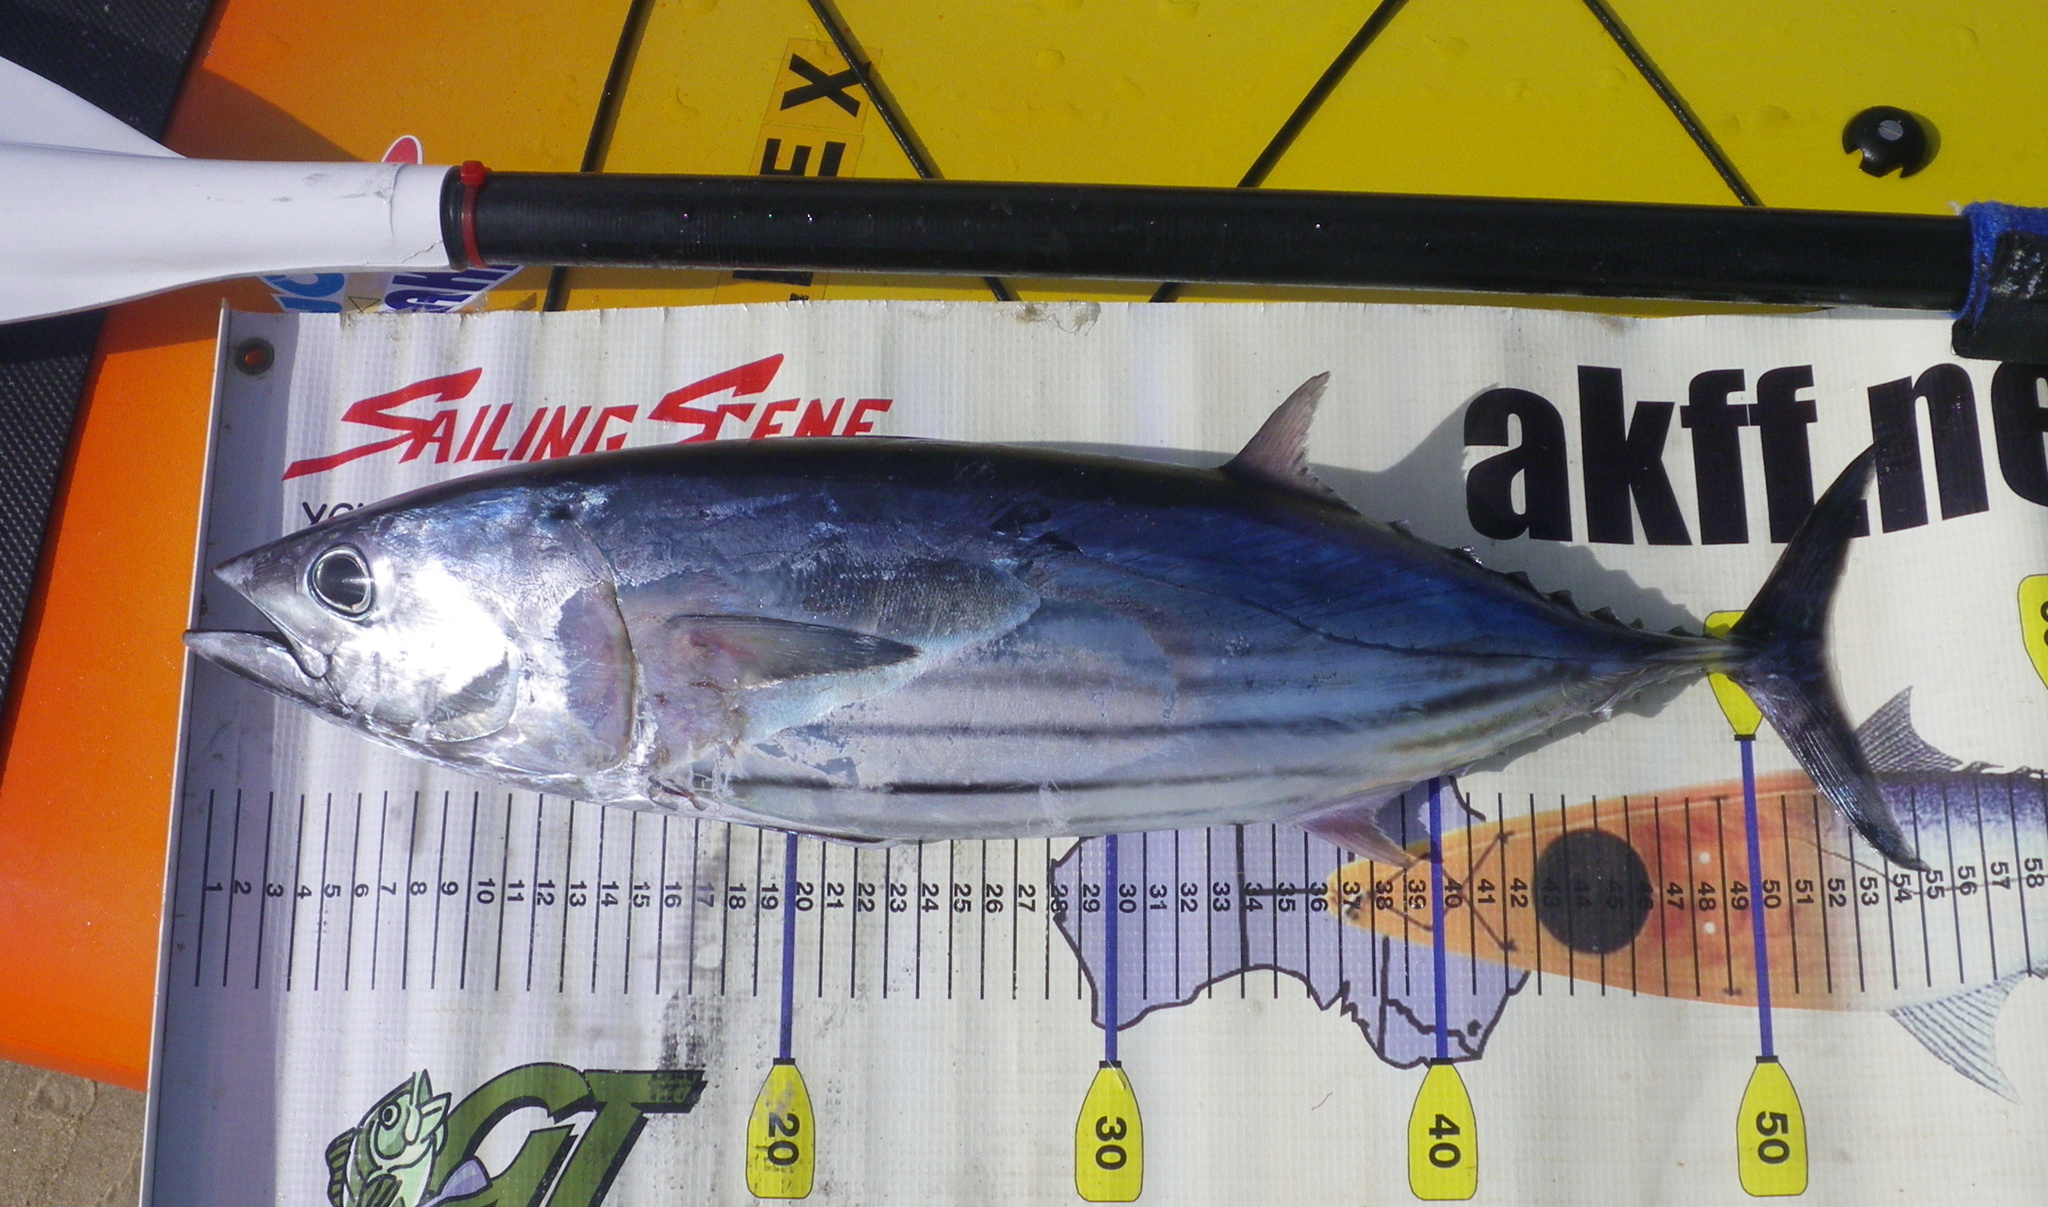 skipjack tuna placed against a backdrop with measurement marks